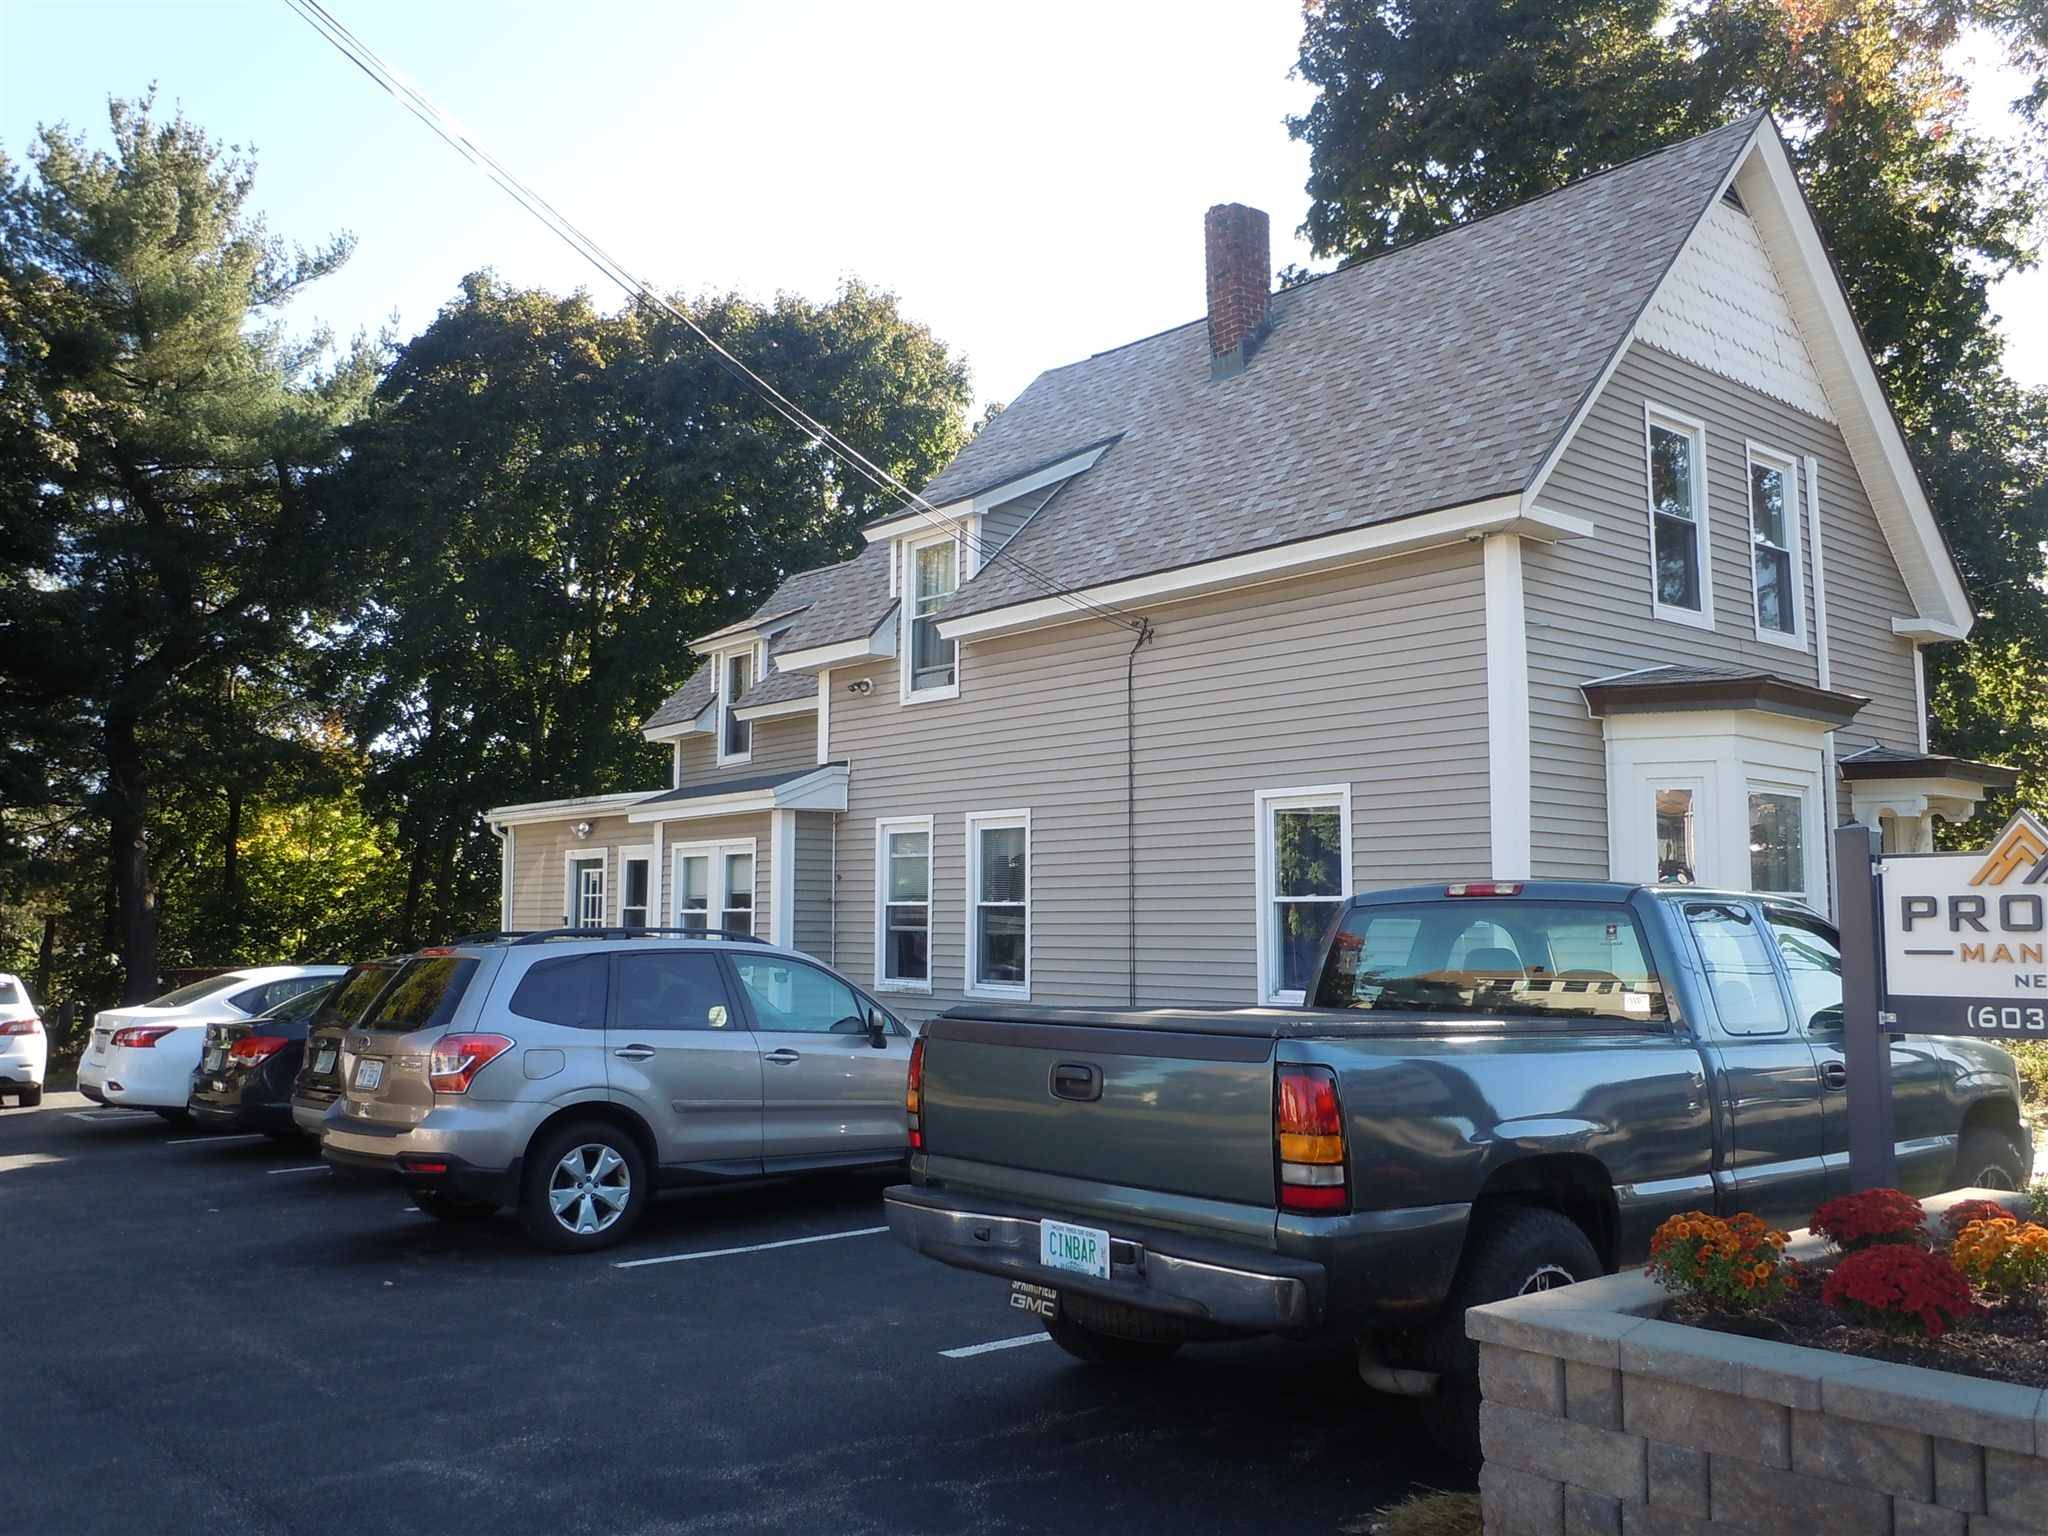 Photo of 106 West Broadway Route Derry NH 03038